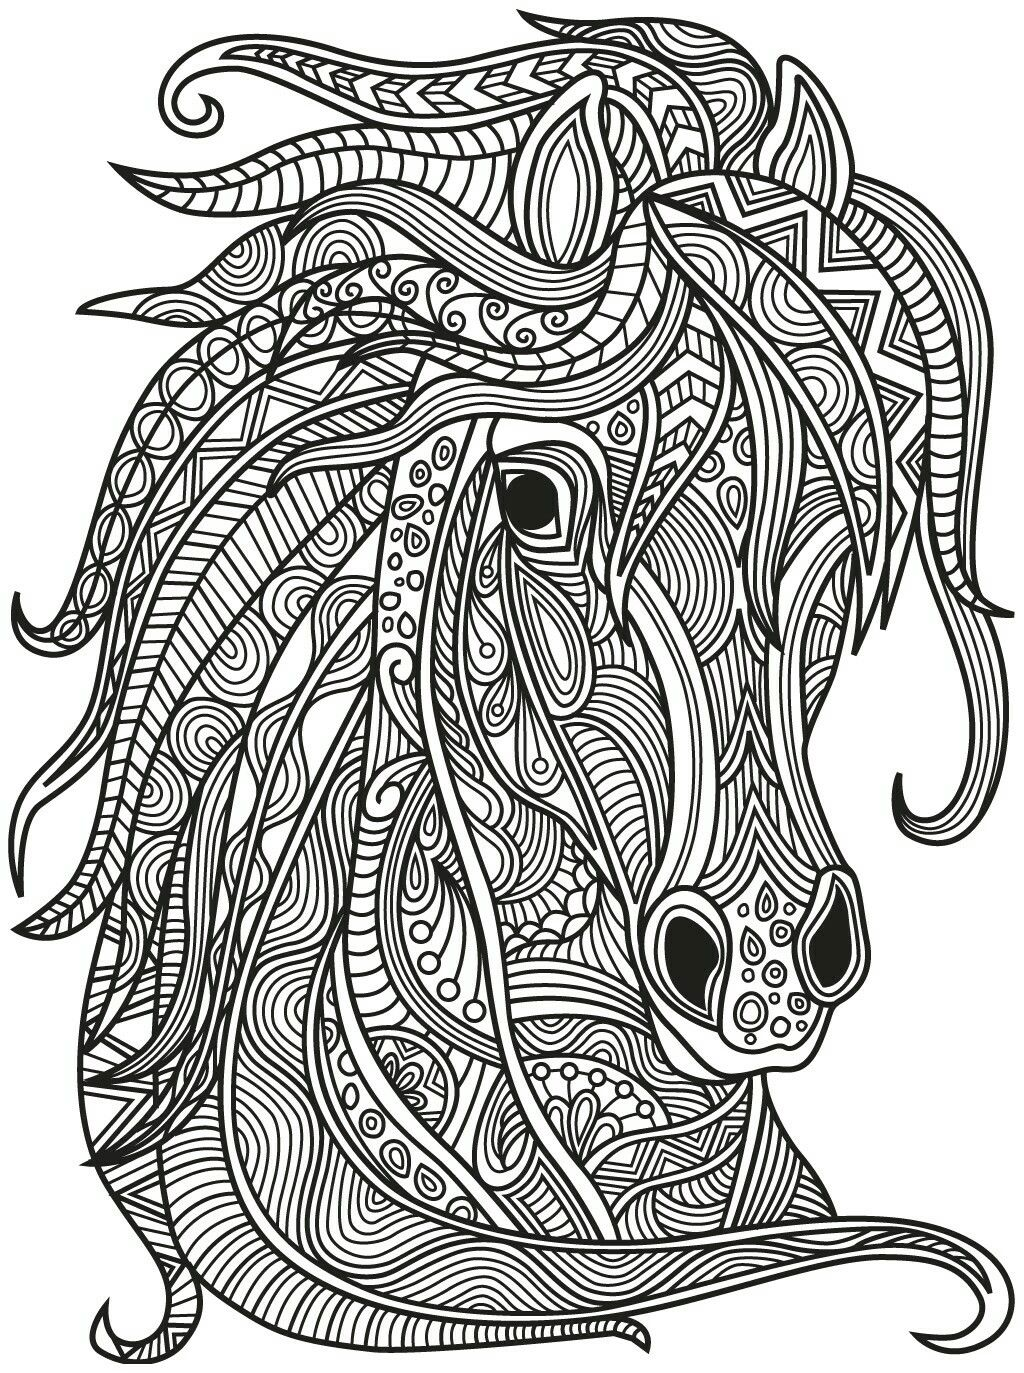 Adult Coloring Pages Books Colouring Free Printable Horses Print In Mandalas Animals